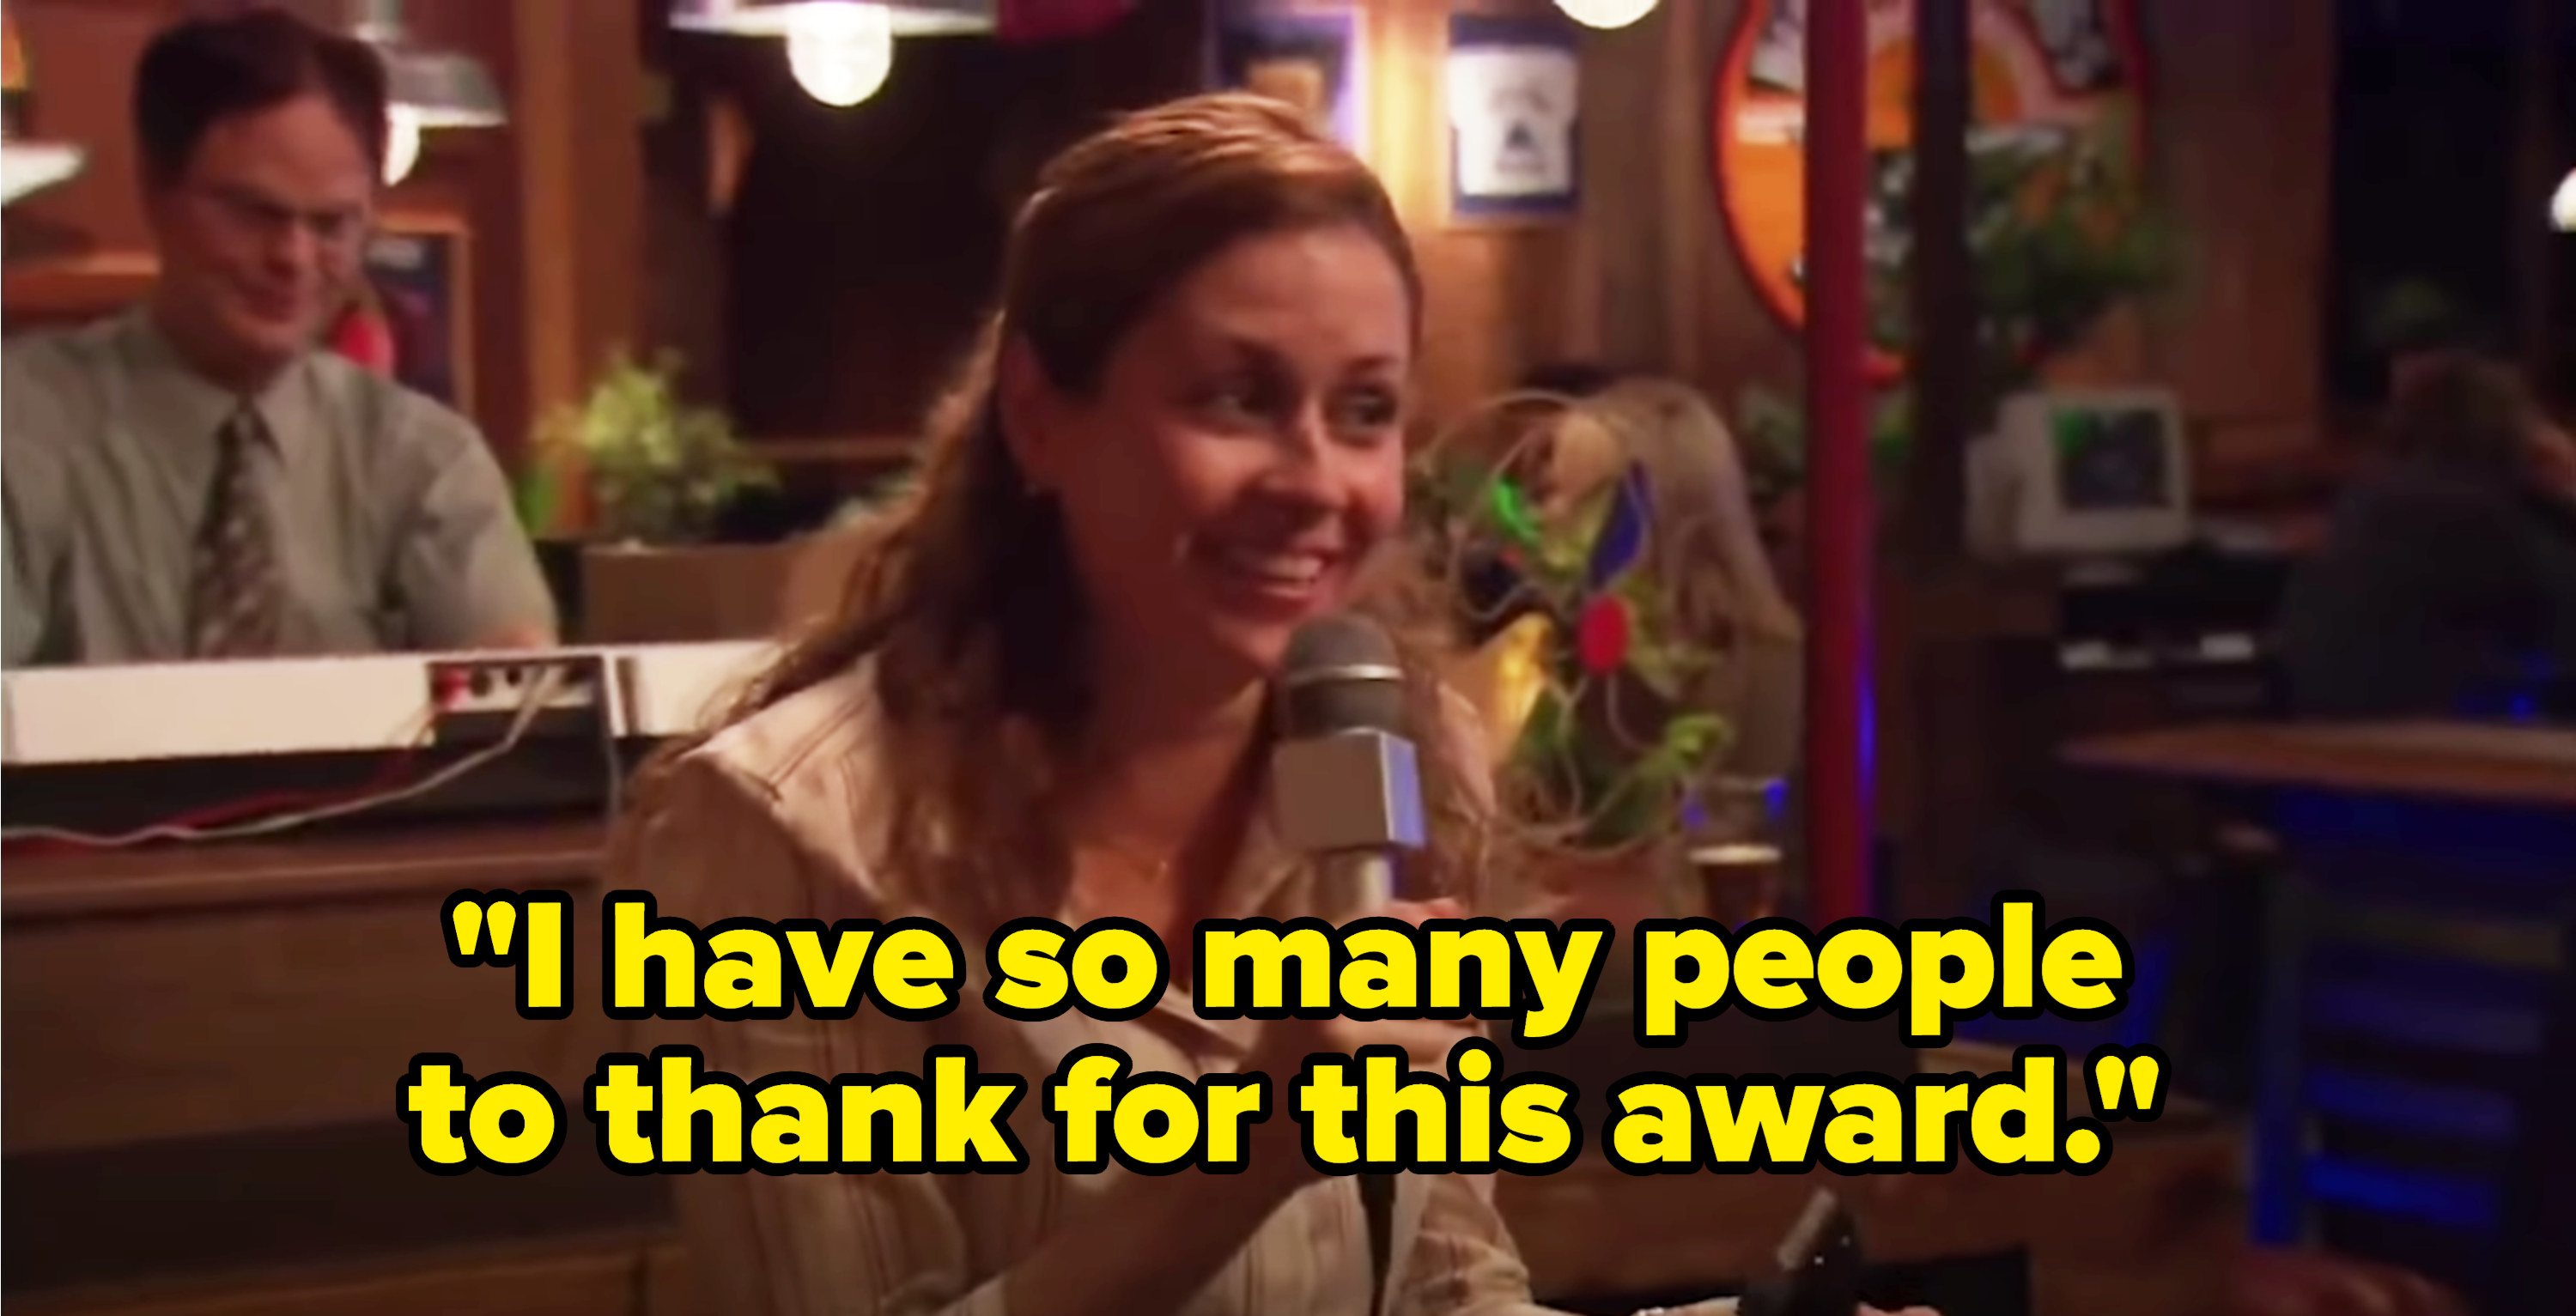 """Pam smiles while giving her award speech: """"I have so many people to thank for this award"""""""